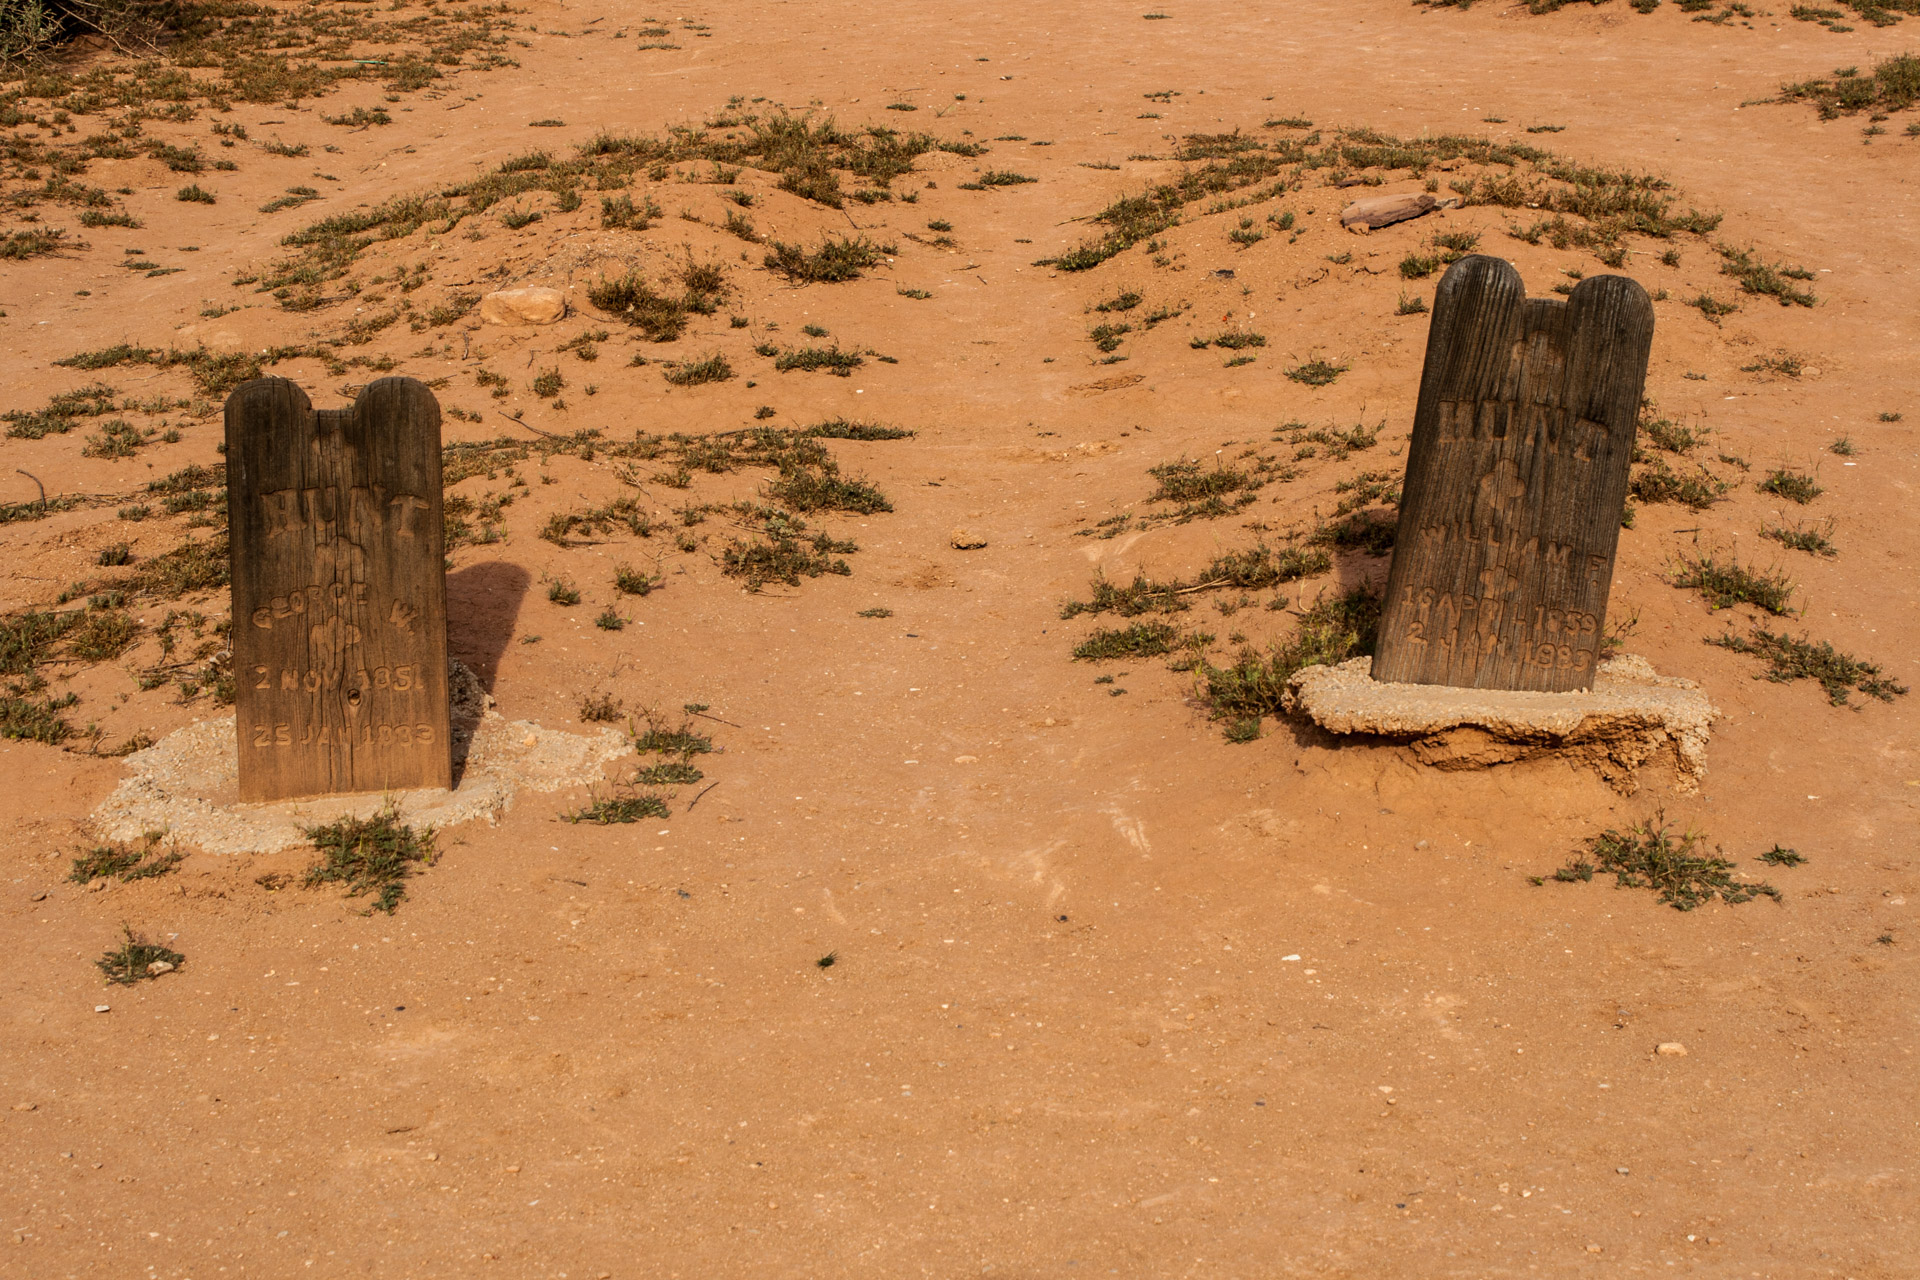 A Desert Ghost Town Cemetery (two old stones)